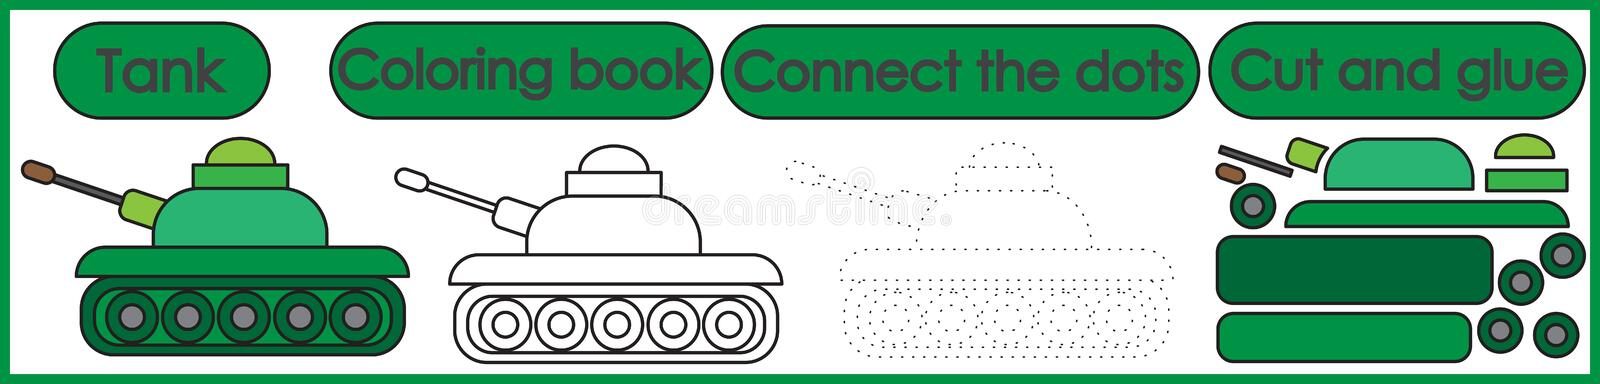 Games for children 3 in 1. Coloring book, connect the dots, cut. And glue. Tank cartoon. Vector illustration royalty free illustration